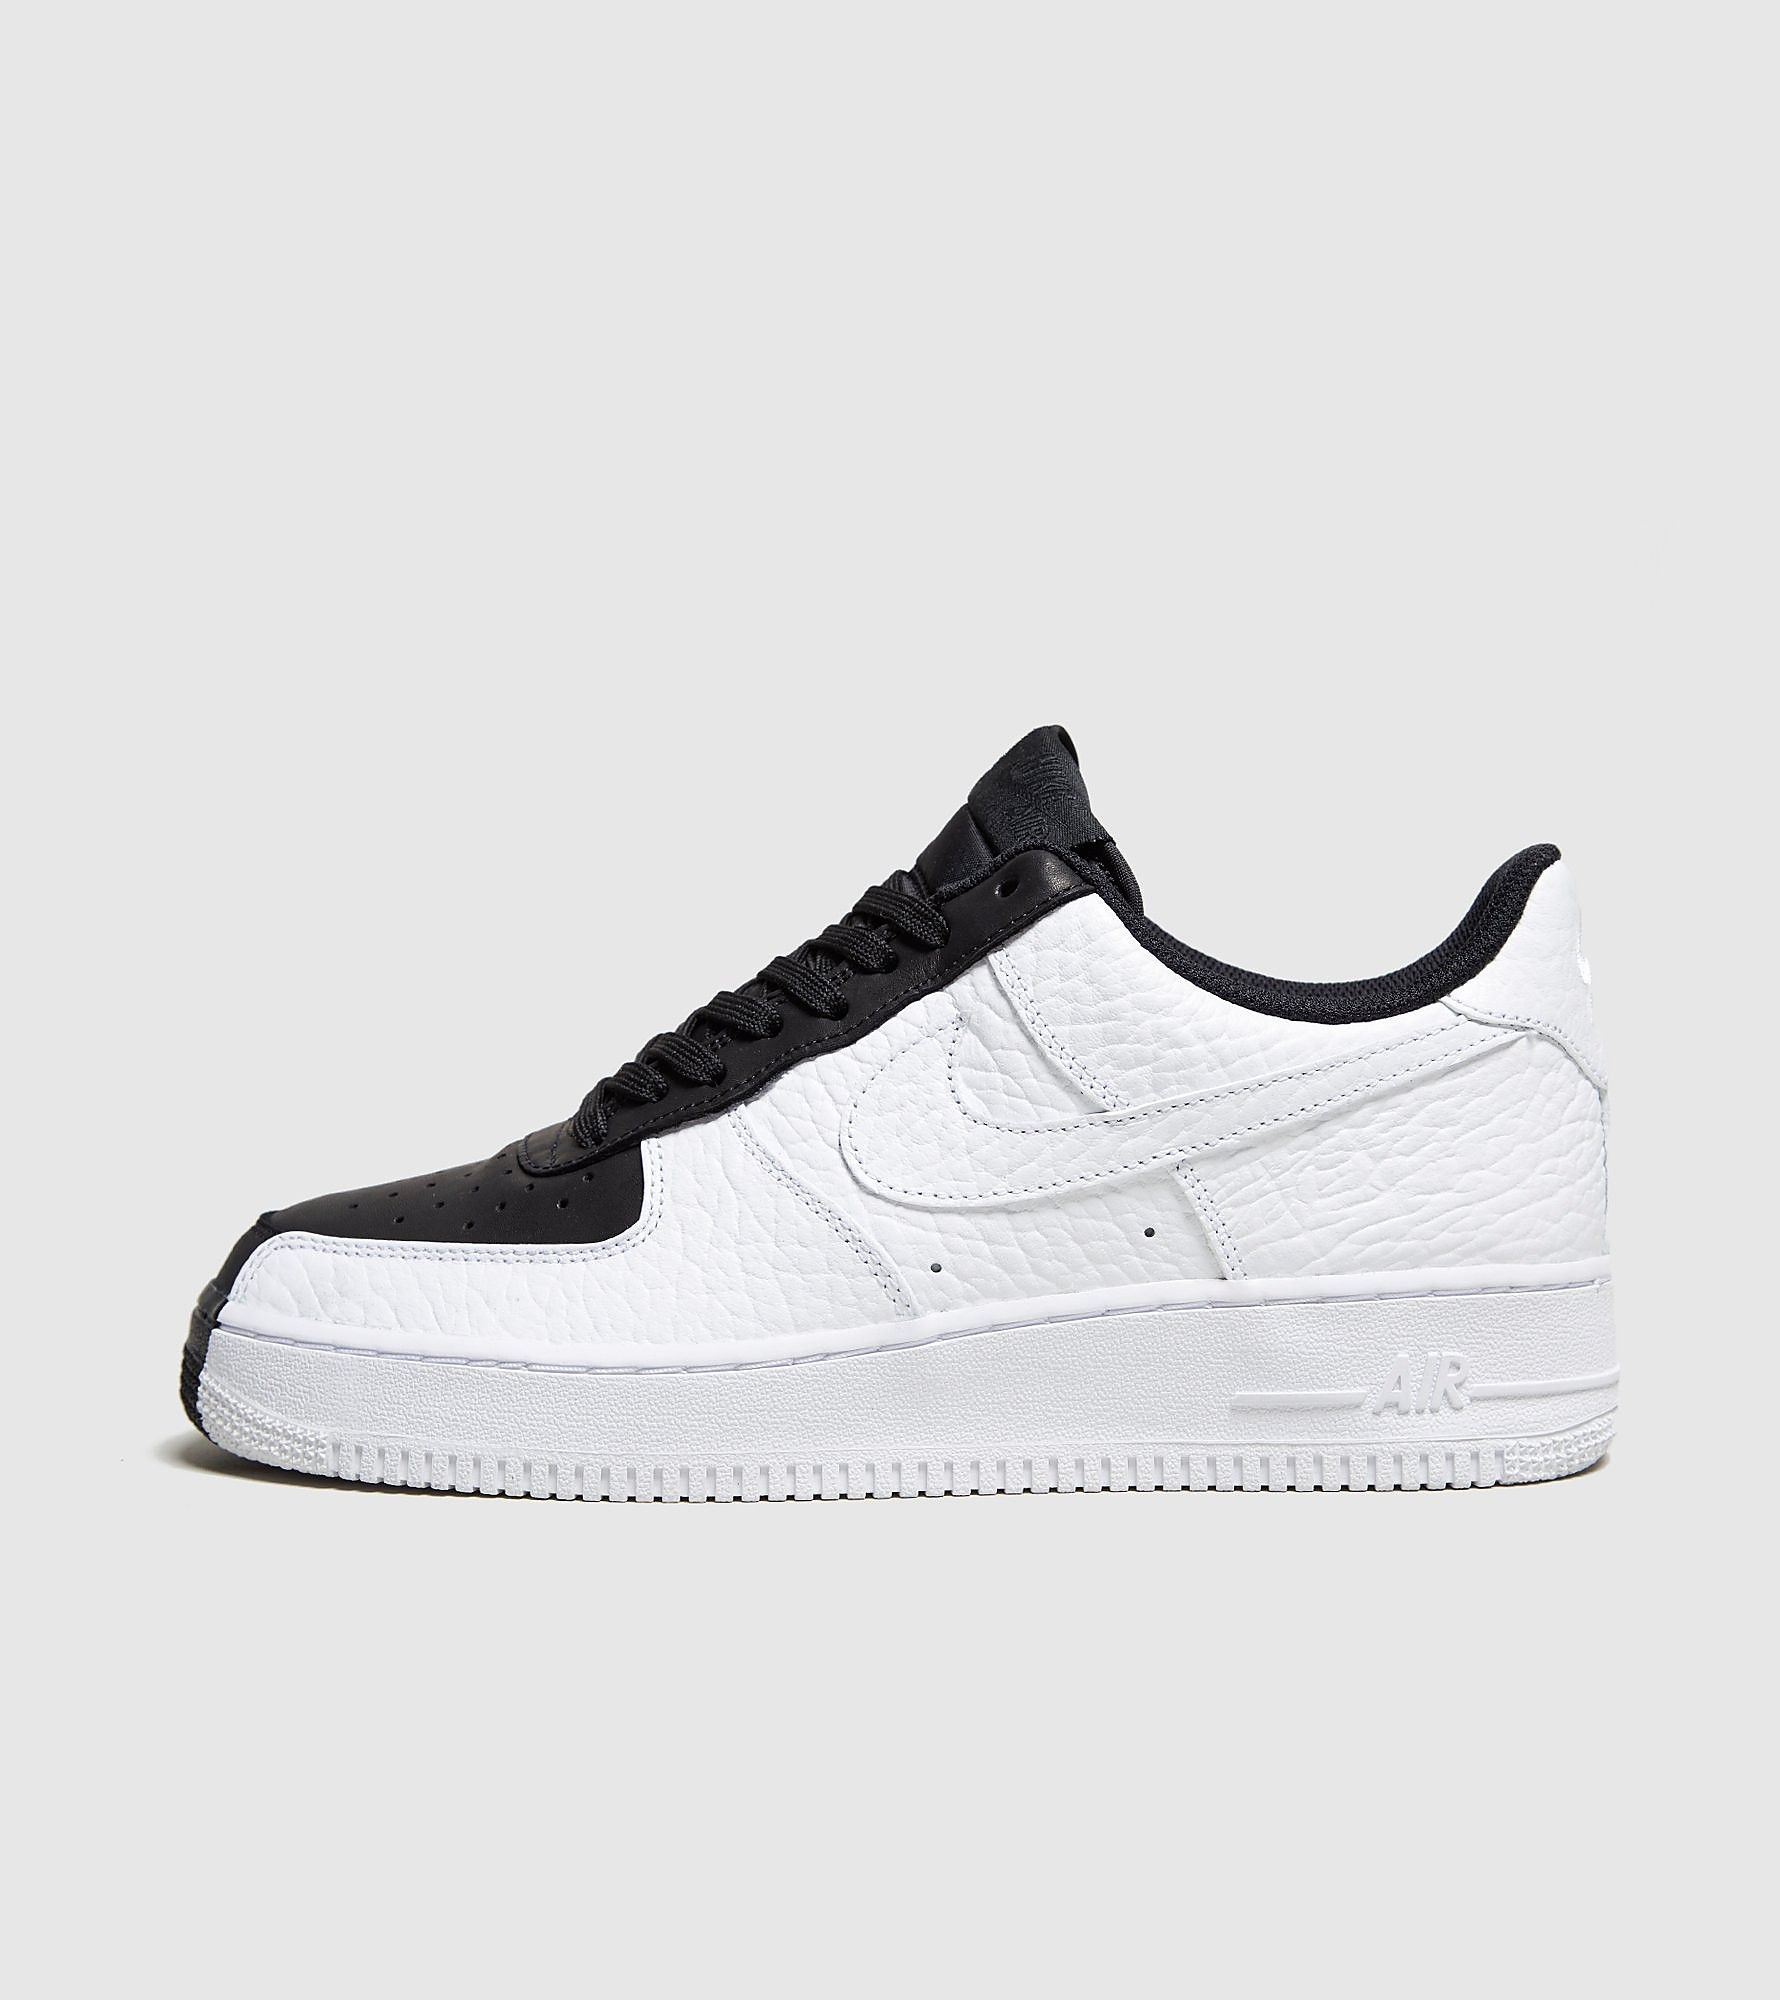 Nike Air Force 1 'Split'